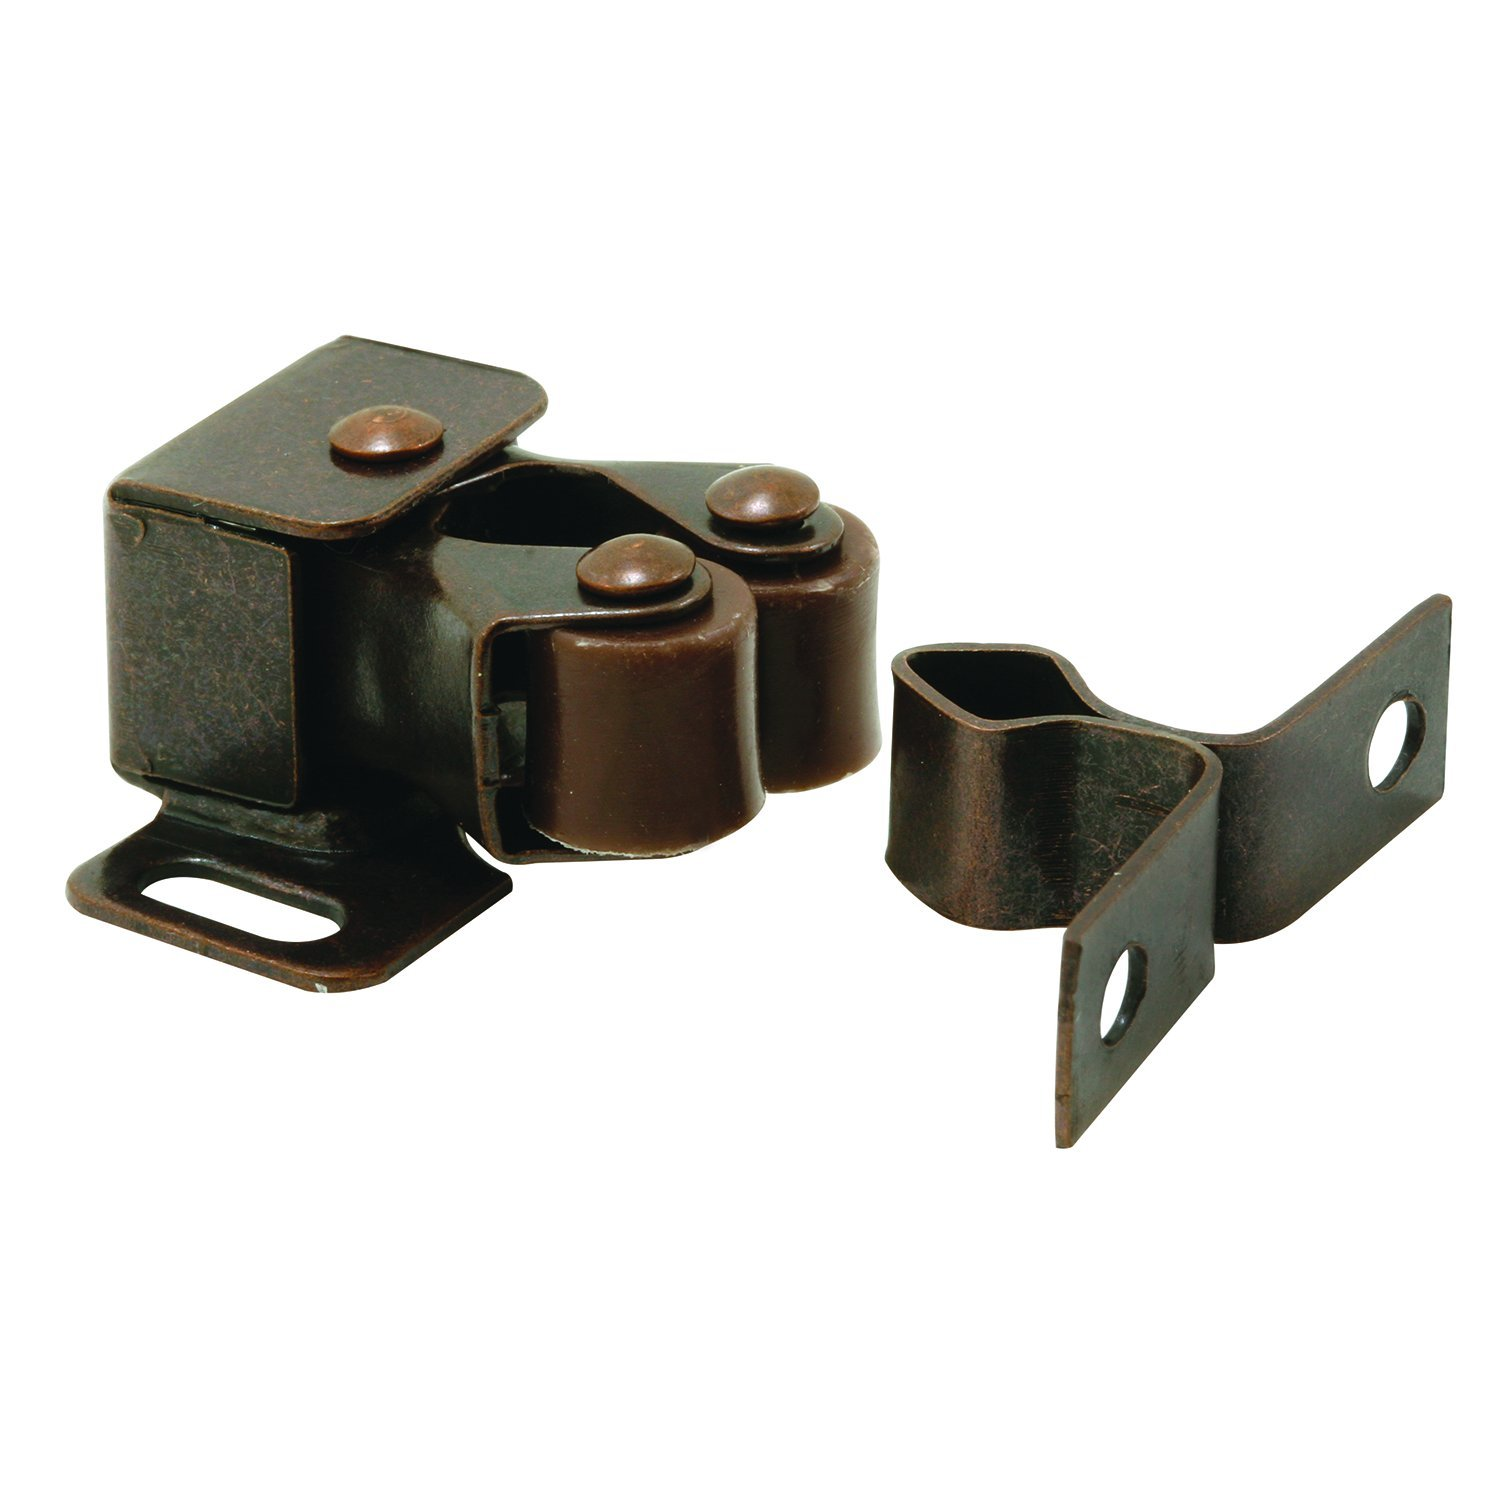 Prime-Line MP7174-100 Cabinet Door Catch, 1-1/4 in, Steel, Bronze, Spring-Loaded, Double Pole, Pack of 100, 100 Piece